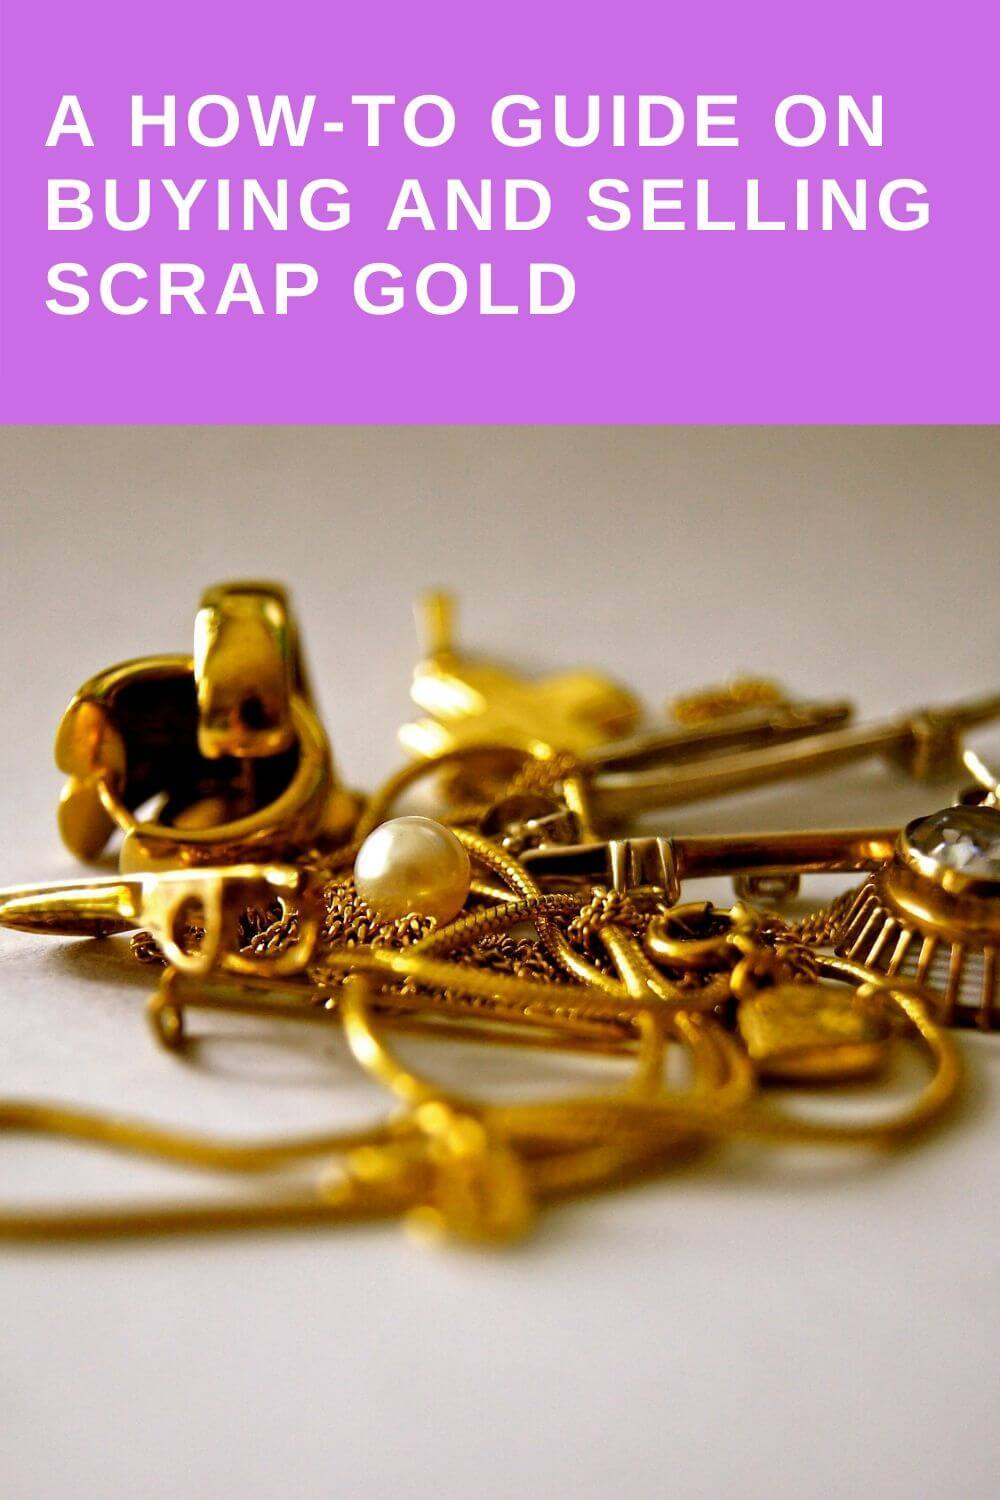 A how-to guide on buying and selling scrap gold